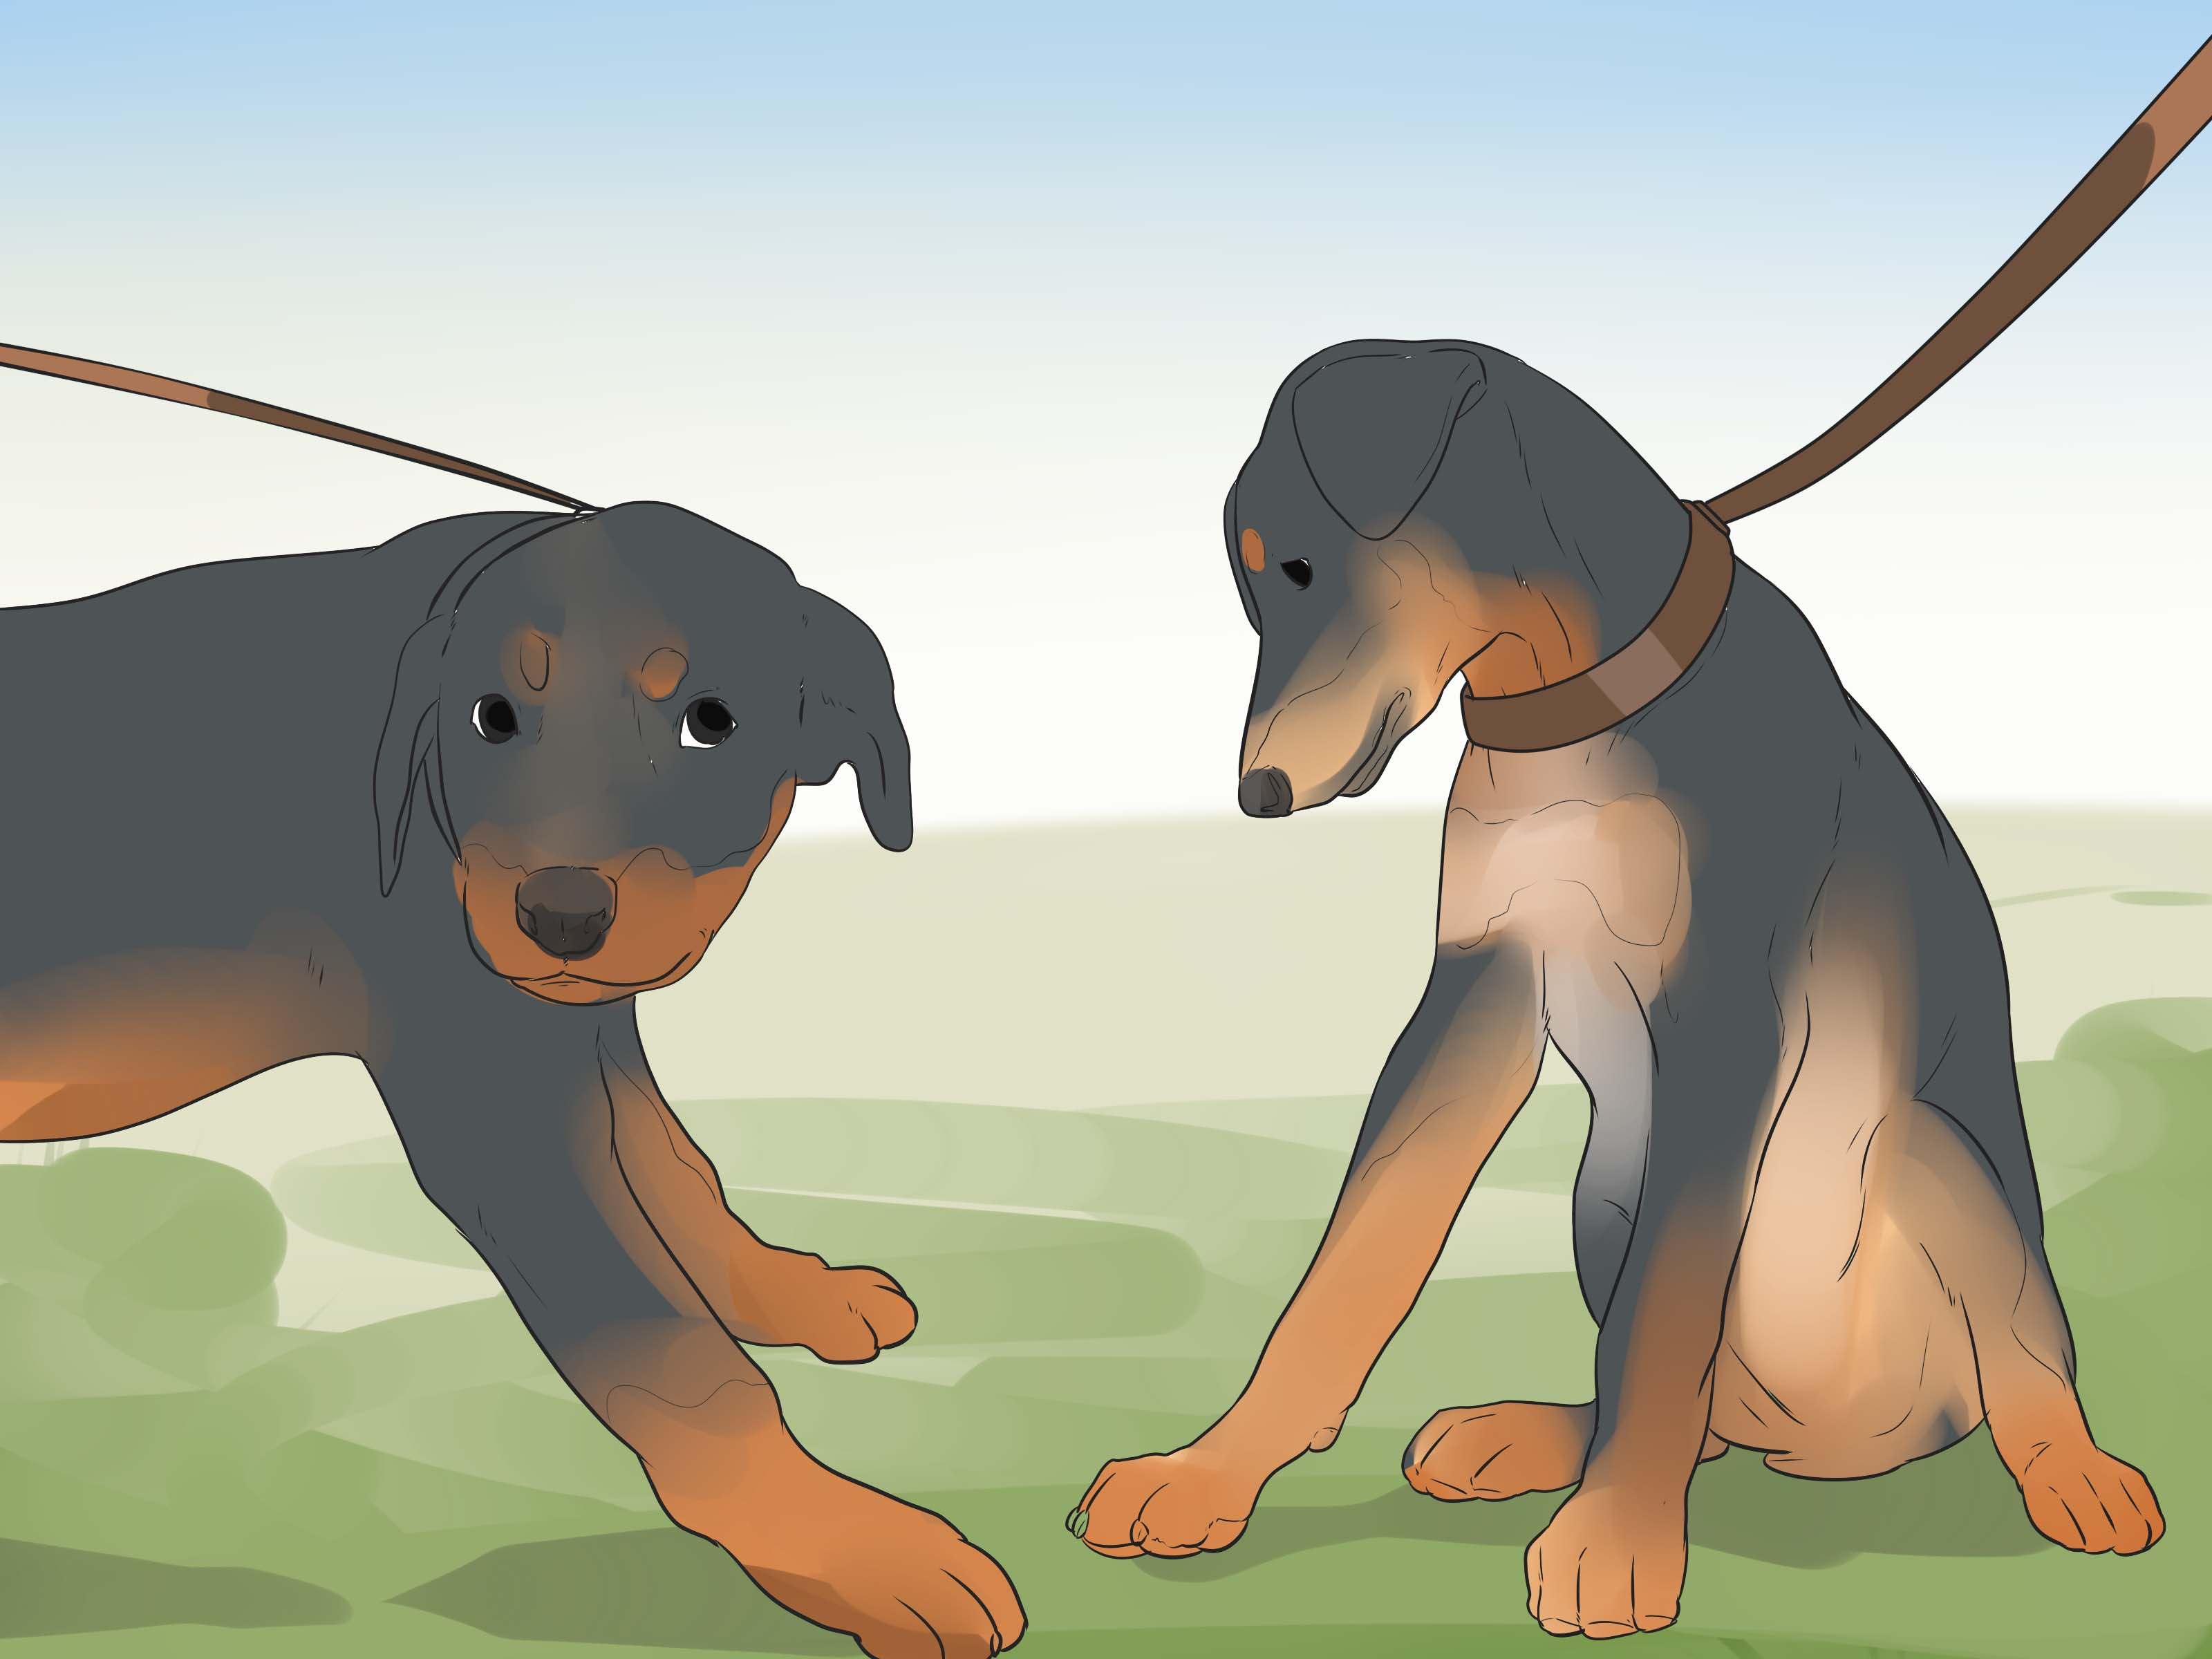 Especial Care Allergies A Rottweiler Puppy Step 14 How Often Should You Ba Your Dog Yahoo How Often Should You Ba Your Dog bark post How Often Should You Bathe Your Dog